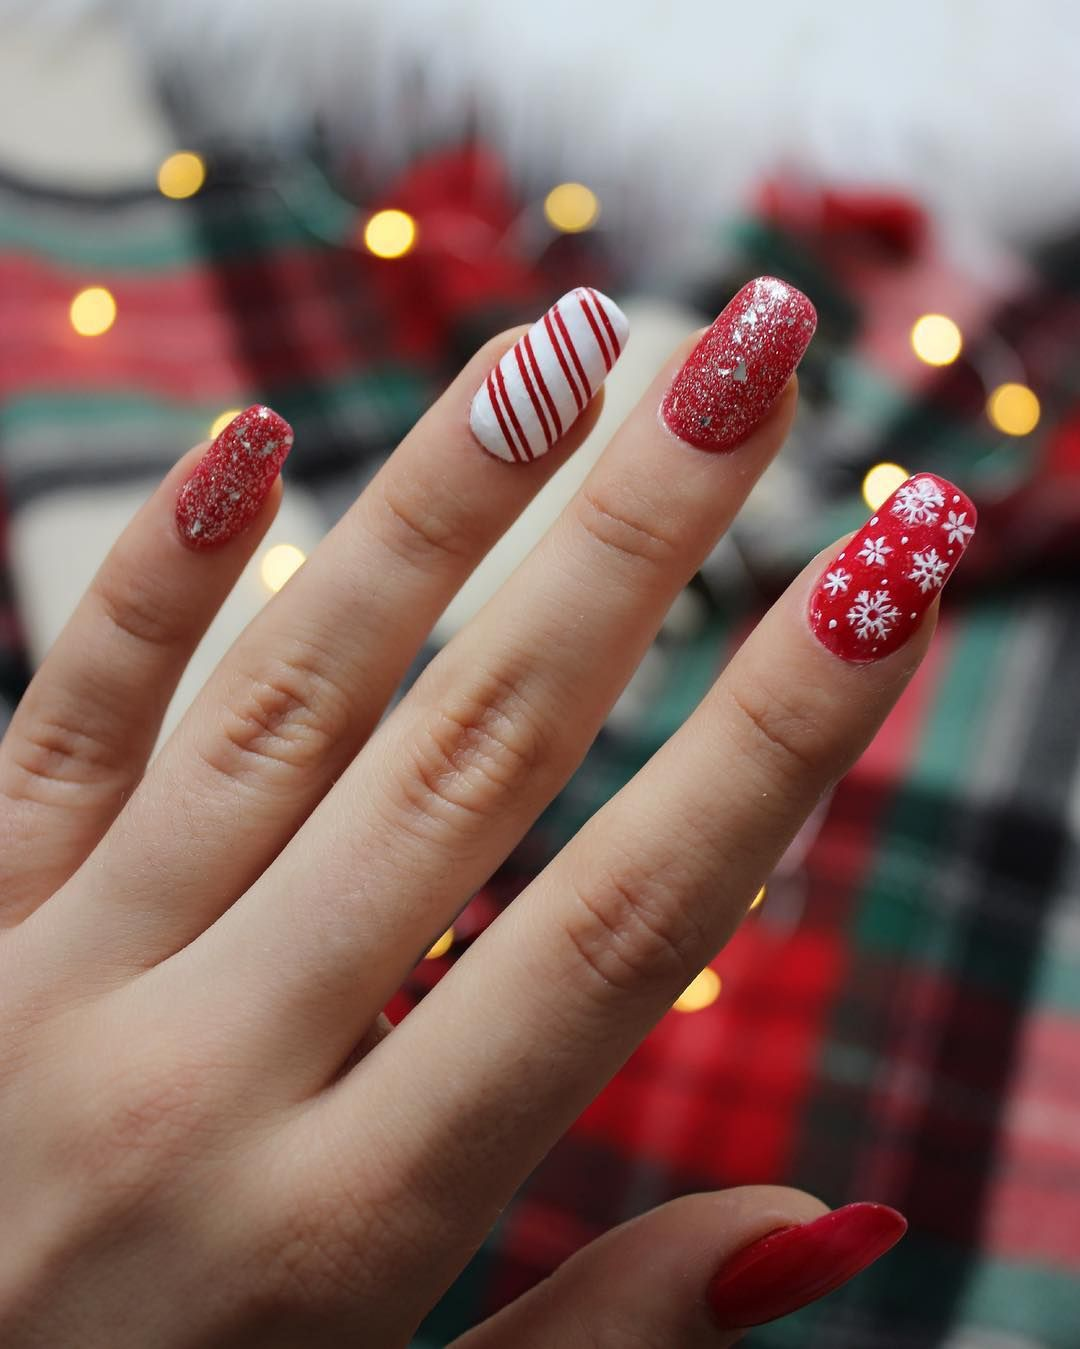 32 Holiday Nail Art Ideas To Get You Into The Christmas Spirit Festival Nails Festive Nail Designs Holiday Nails